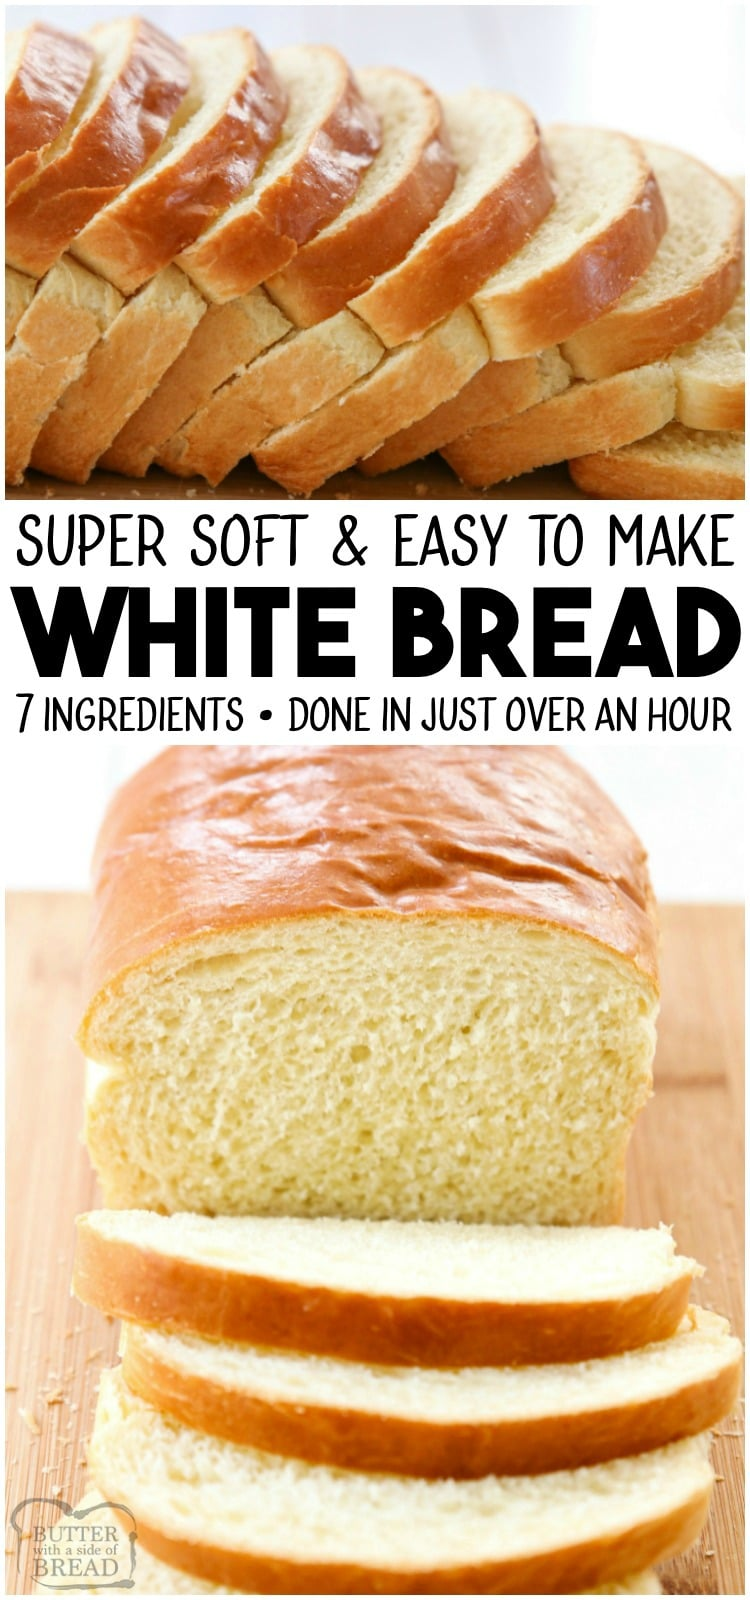 White Bread recipe is made with basic ingredients & detailed instructions showing how to make bread! Done in just over an hour this recipeis one of the best soft white sandwich bread recipes.